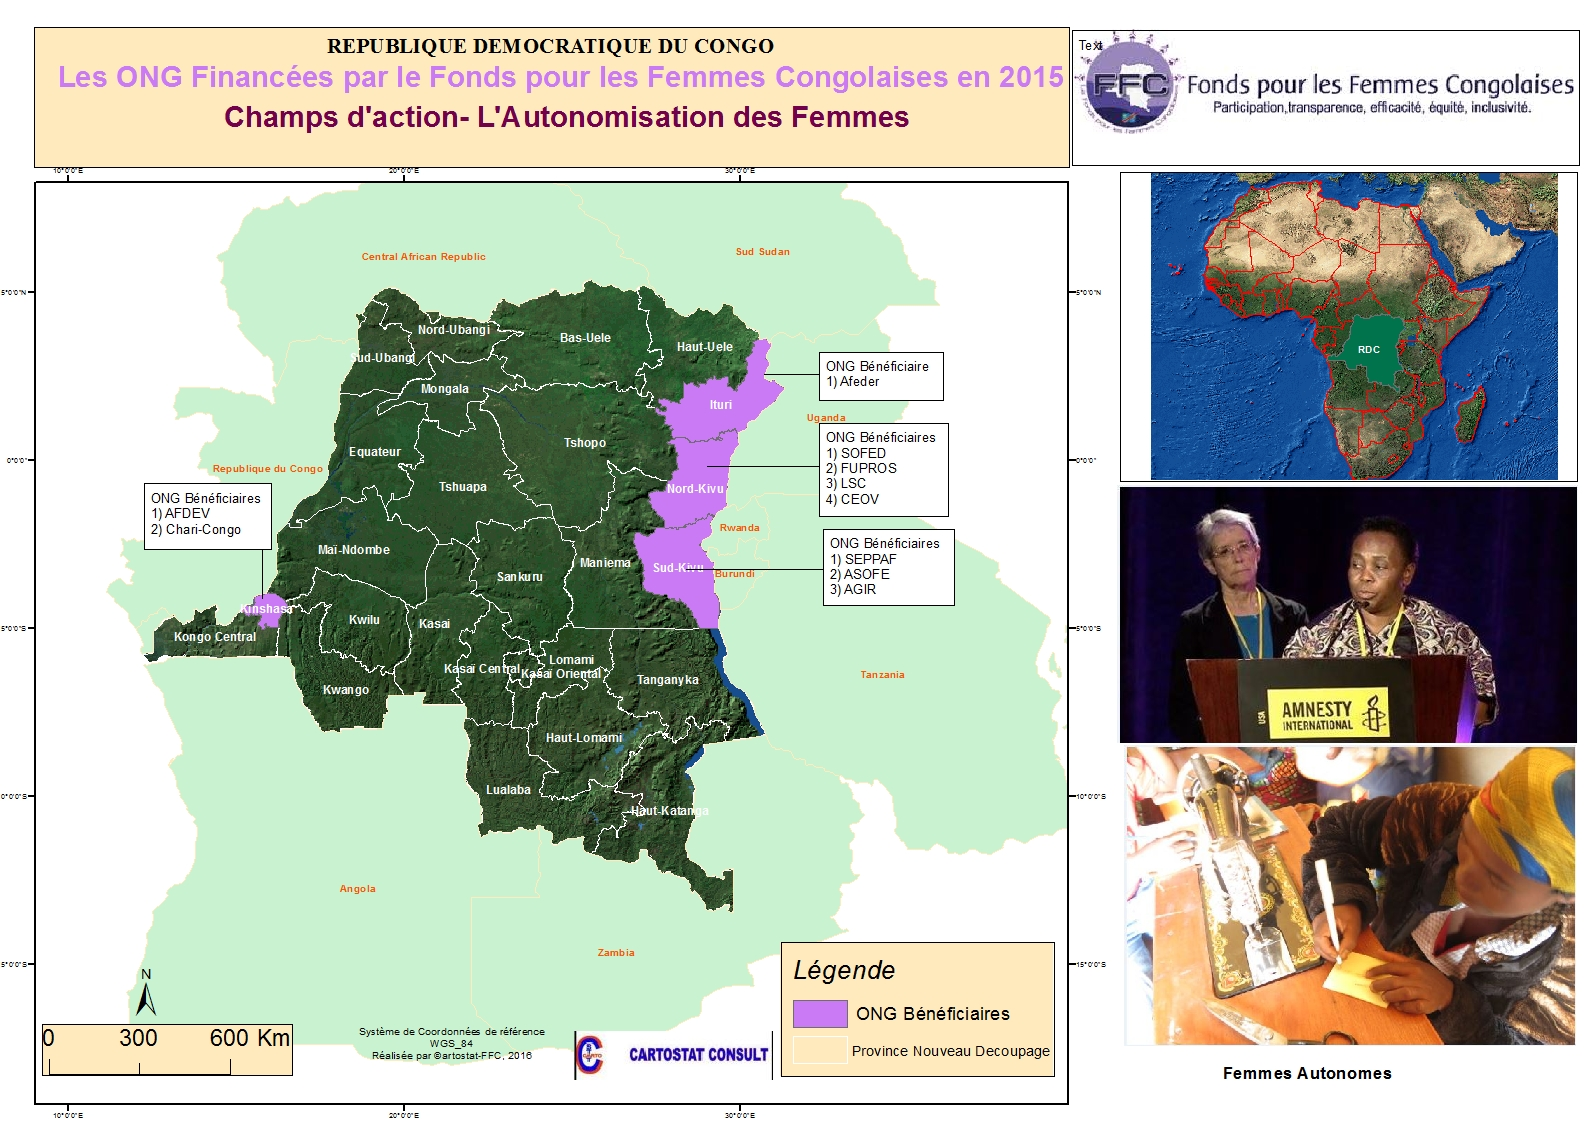 2015 maps of  all empowerment activities of FFC